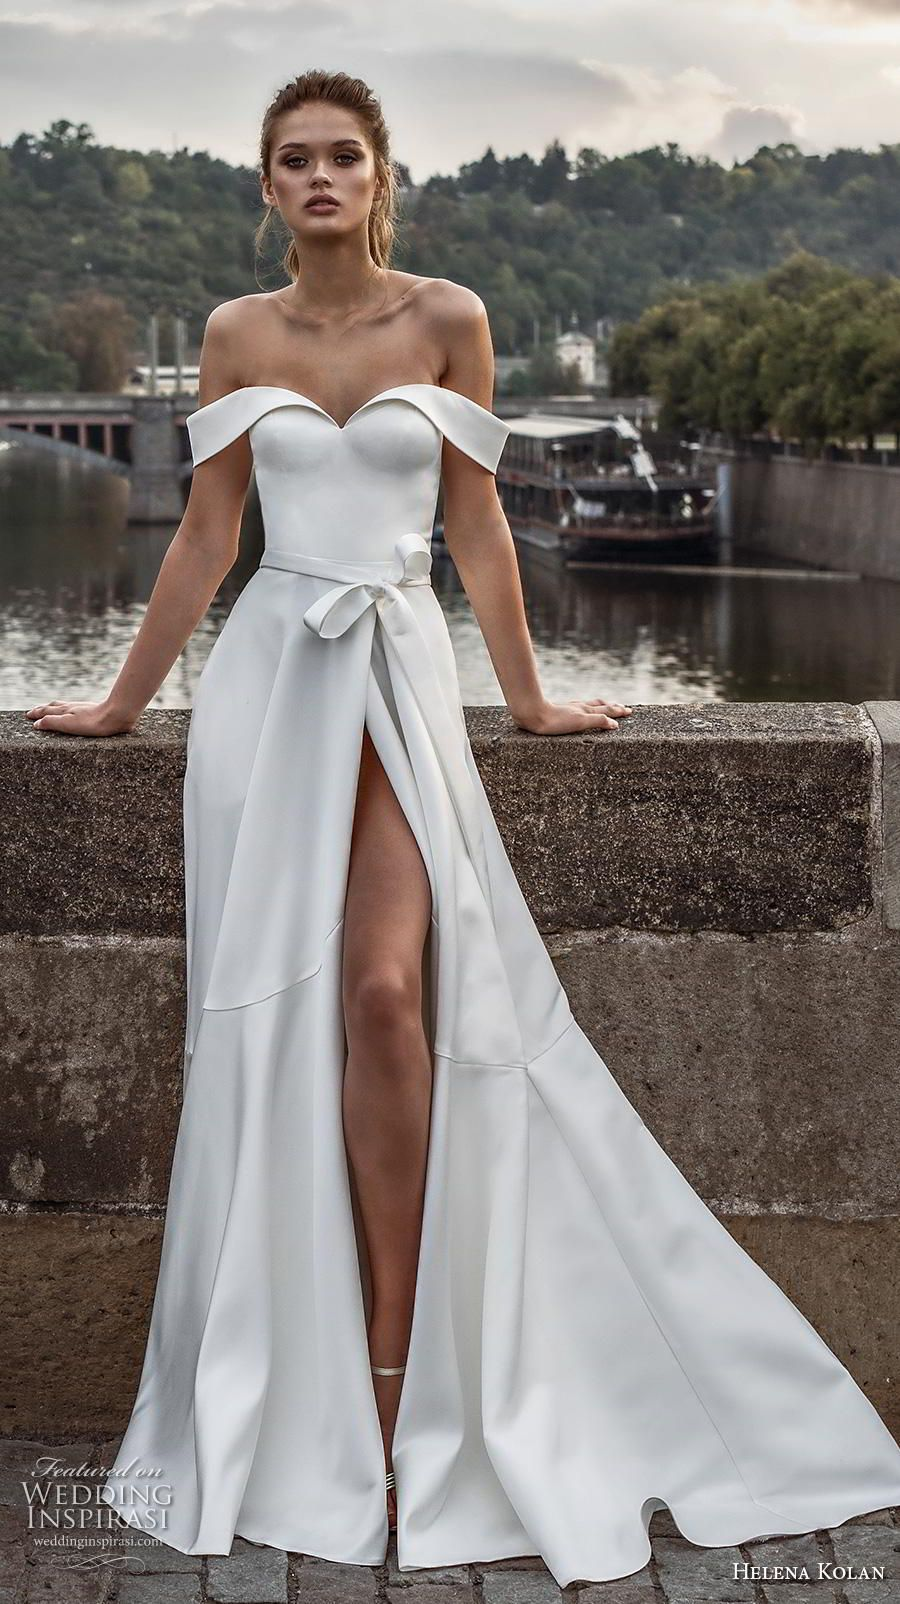 Helena Kolan 2019 Wedding Dresses Wedding Inspirasi Wedding Dress Belt Wedding Dress Trends Wedding Dresses